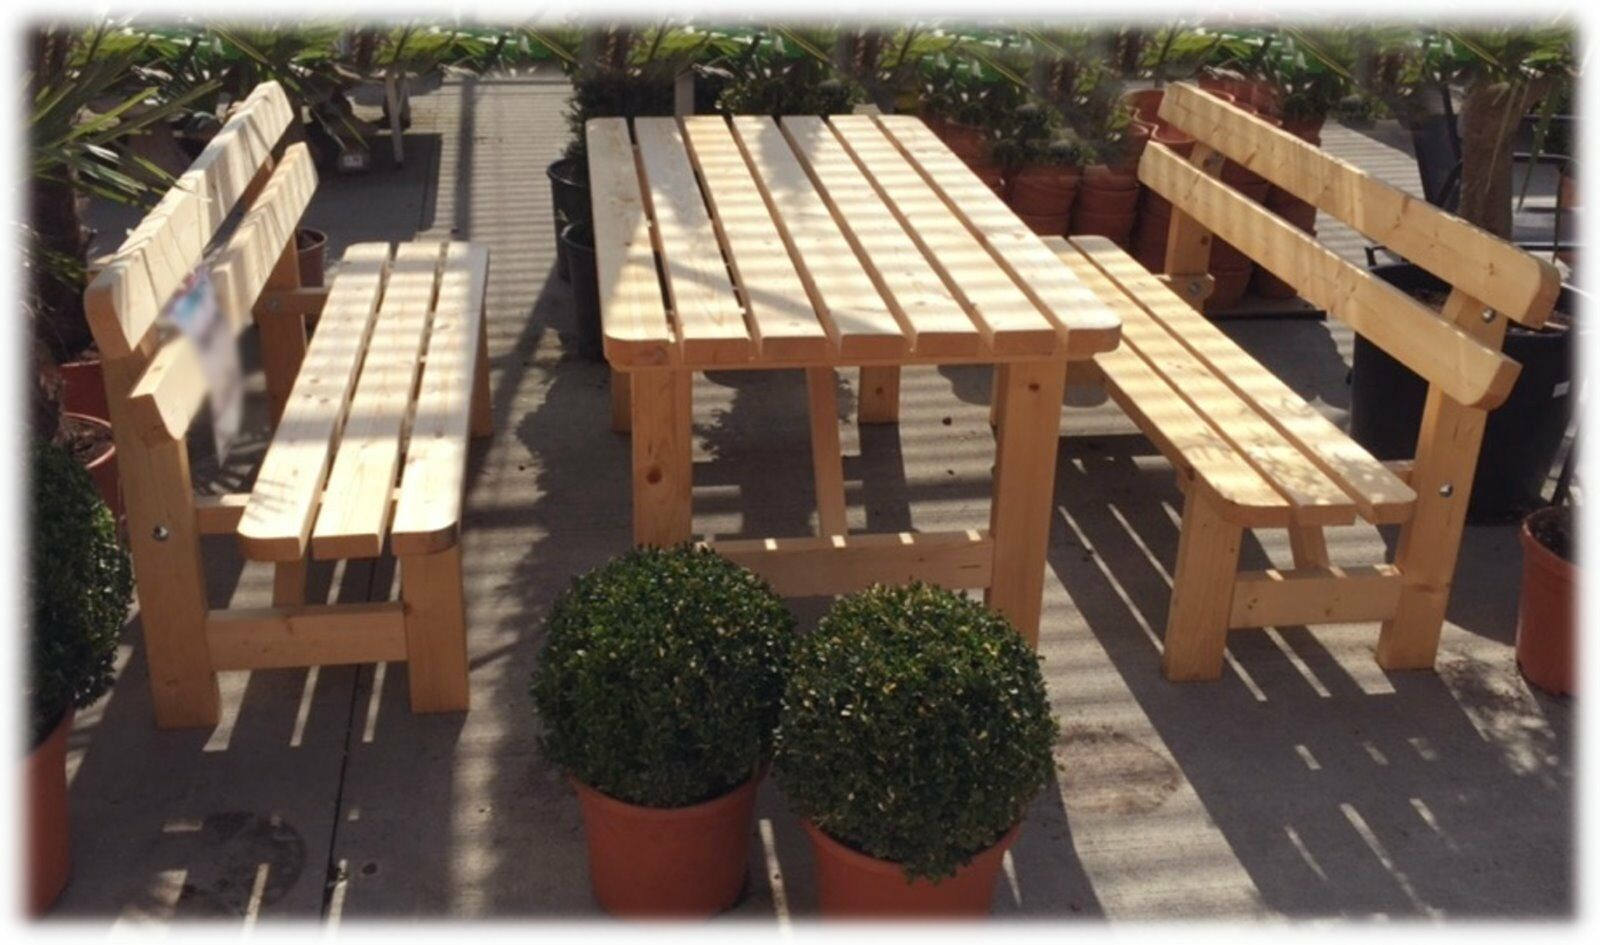 holz mass m bel sitzgruppe garten bierzelt garnitur tisch. Black Bedroom Furniture Sets. Home Design Ideas